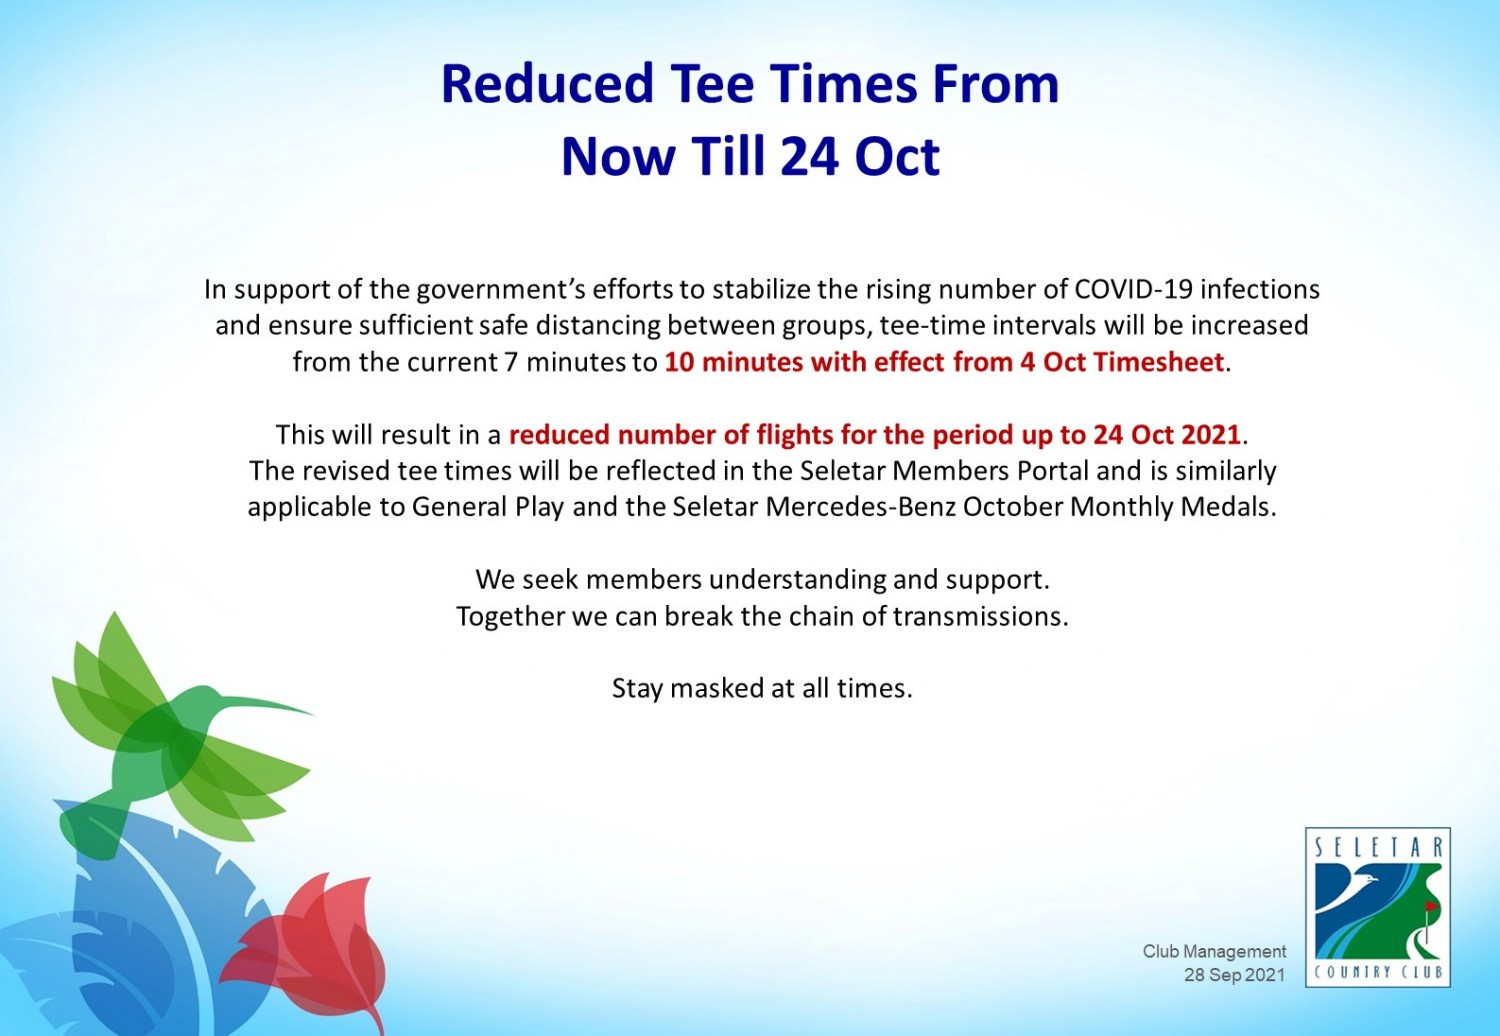 GOLF_Reduced tee times from 4-24 Oct